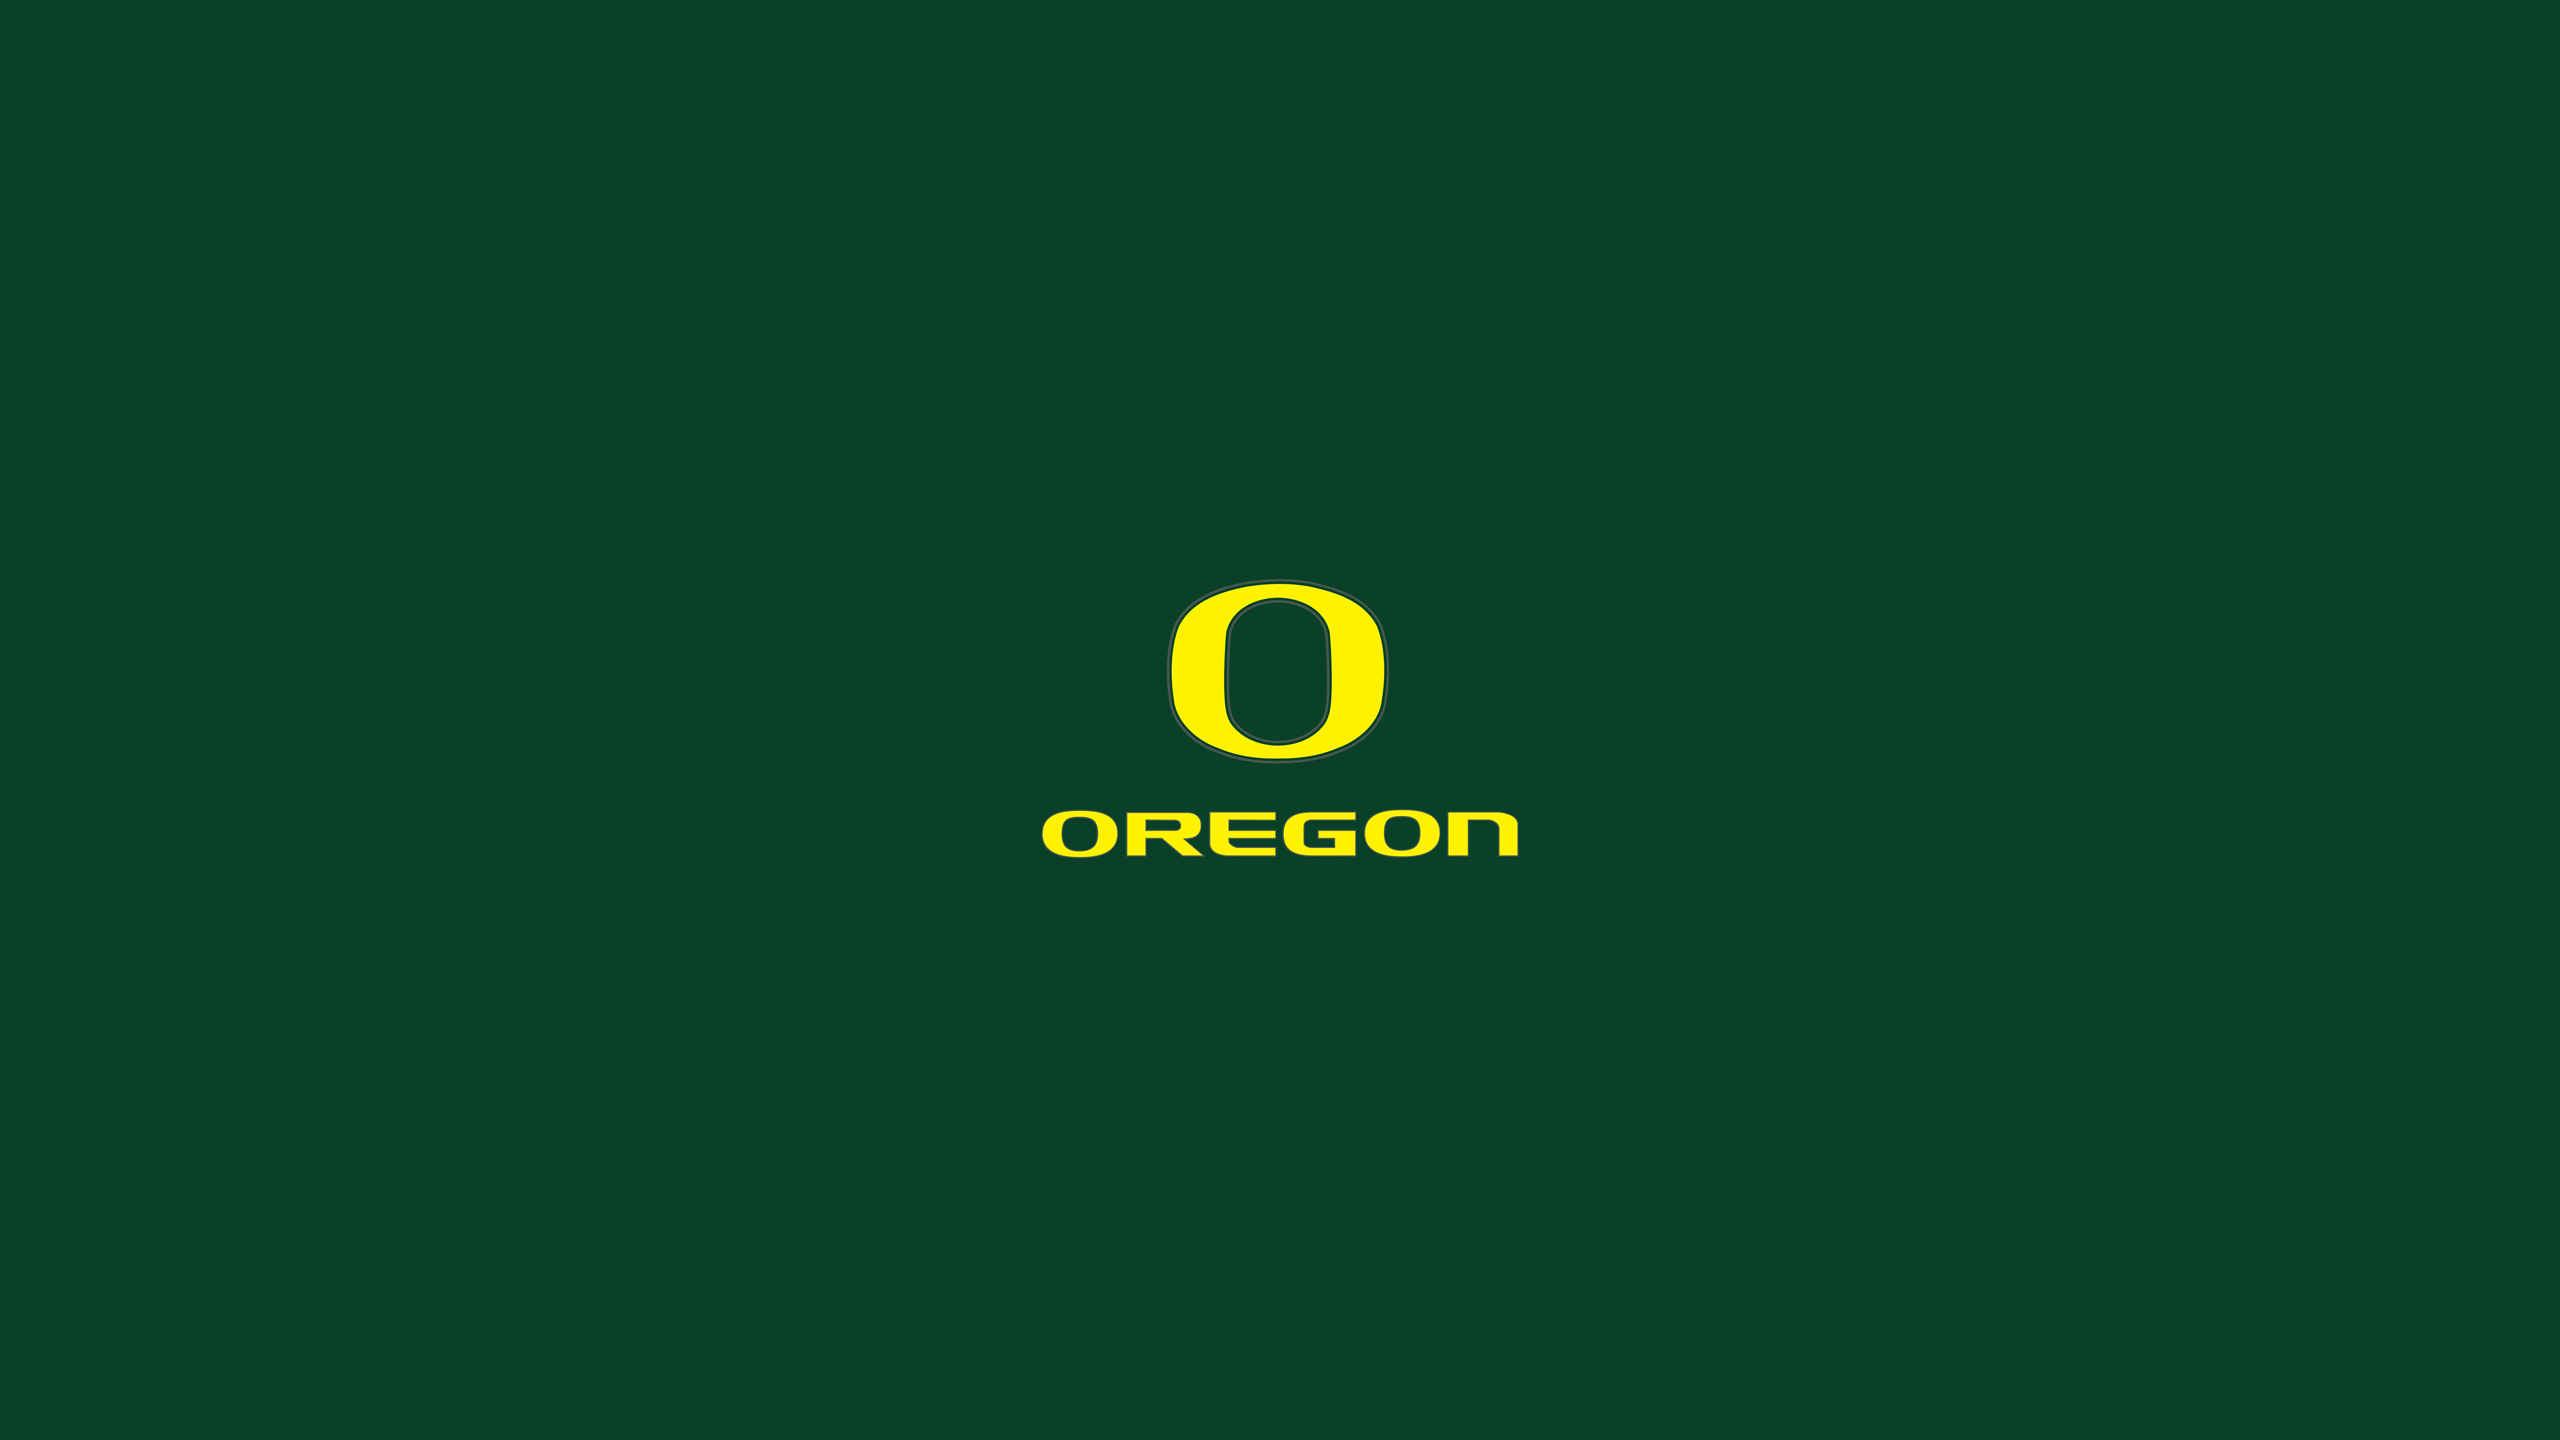 University Of Oregon Wallpaper